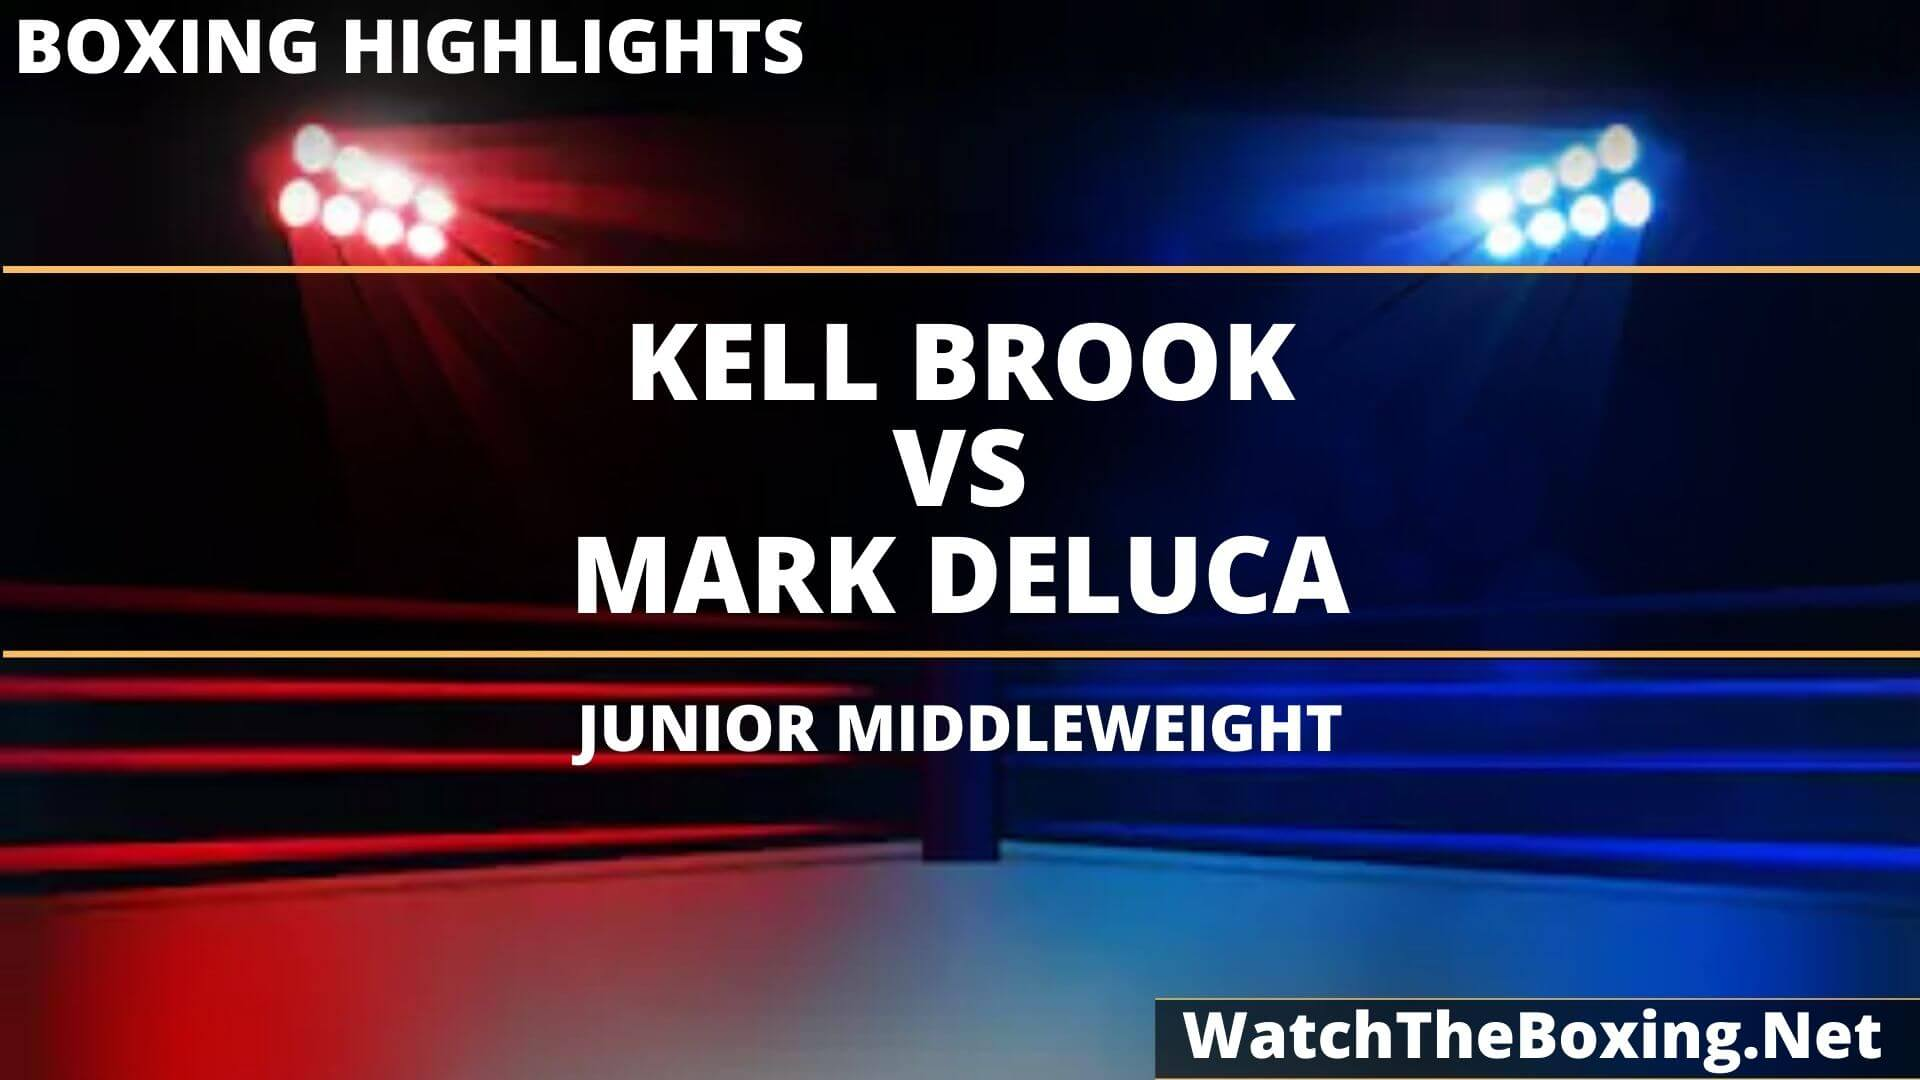 Kell Brook Vs Mark DeLuca Highlights 2020